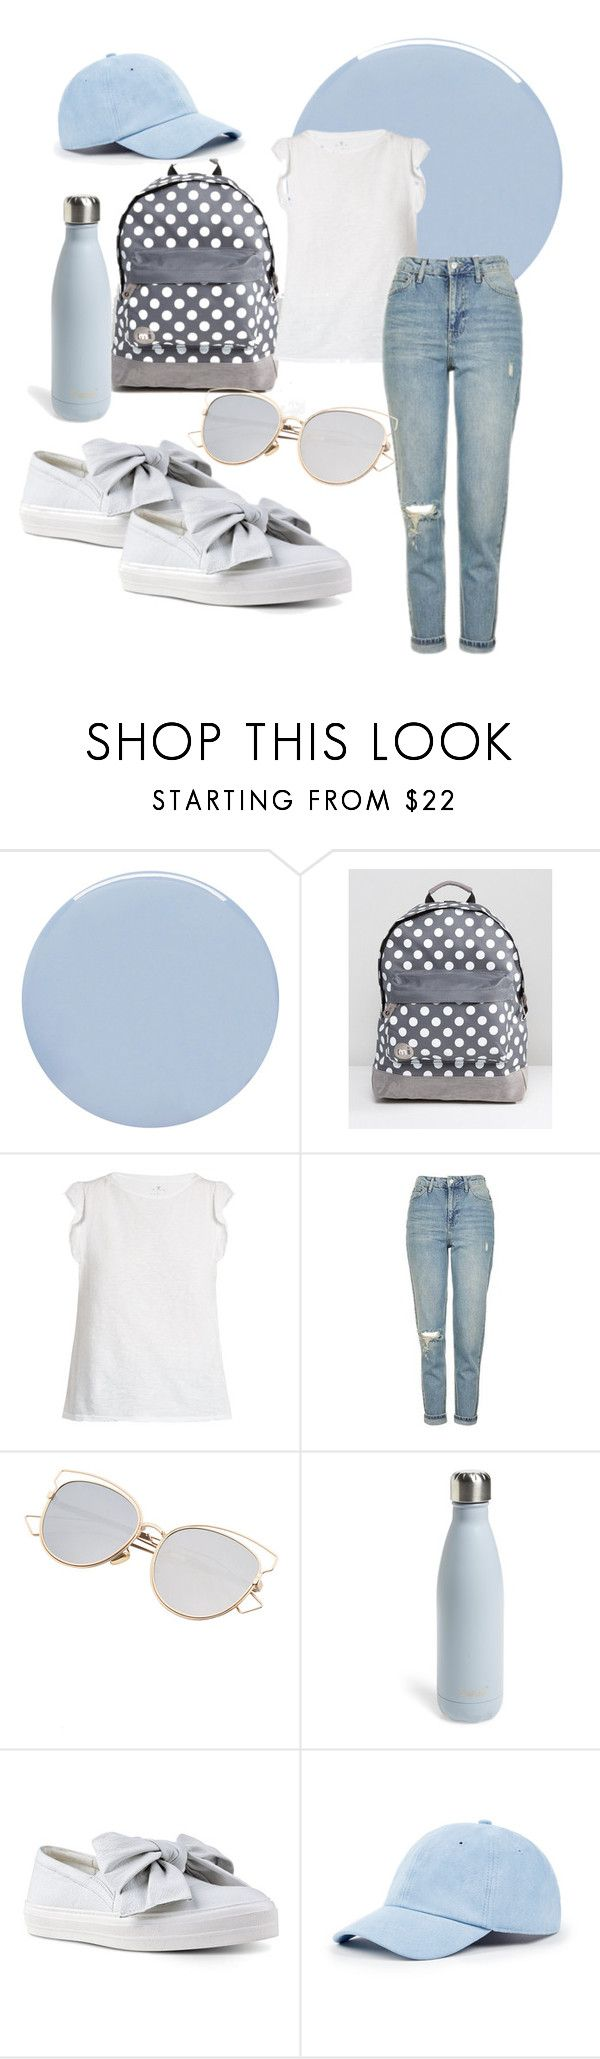 """walking light"" by alpha-b ❤ liked on Polyvore featuring Deborah Lippmann, Mi-Pac, Velvet by Graham & Spencer, Topshop, S'well, Nine West and Sole Society"